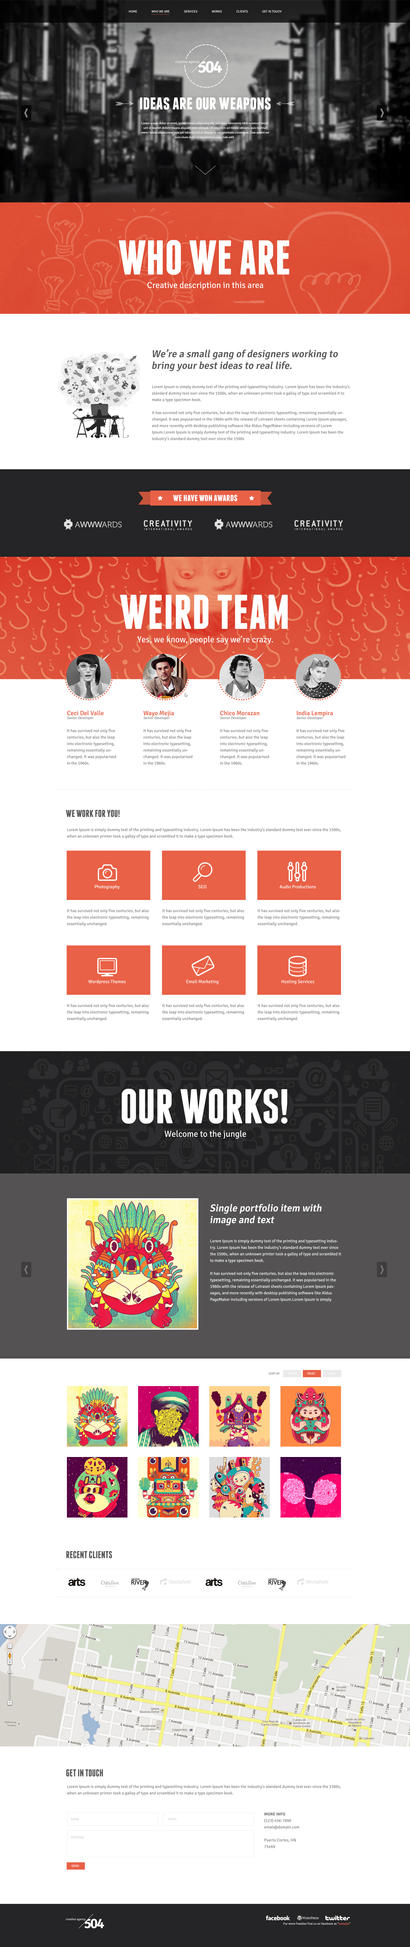 504 One Page One Page PSD Freebie by EAMejia